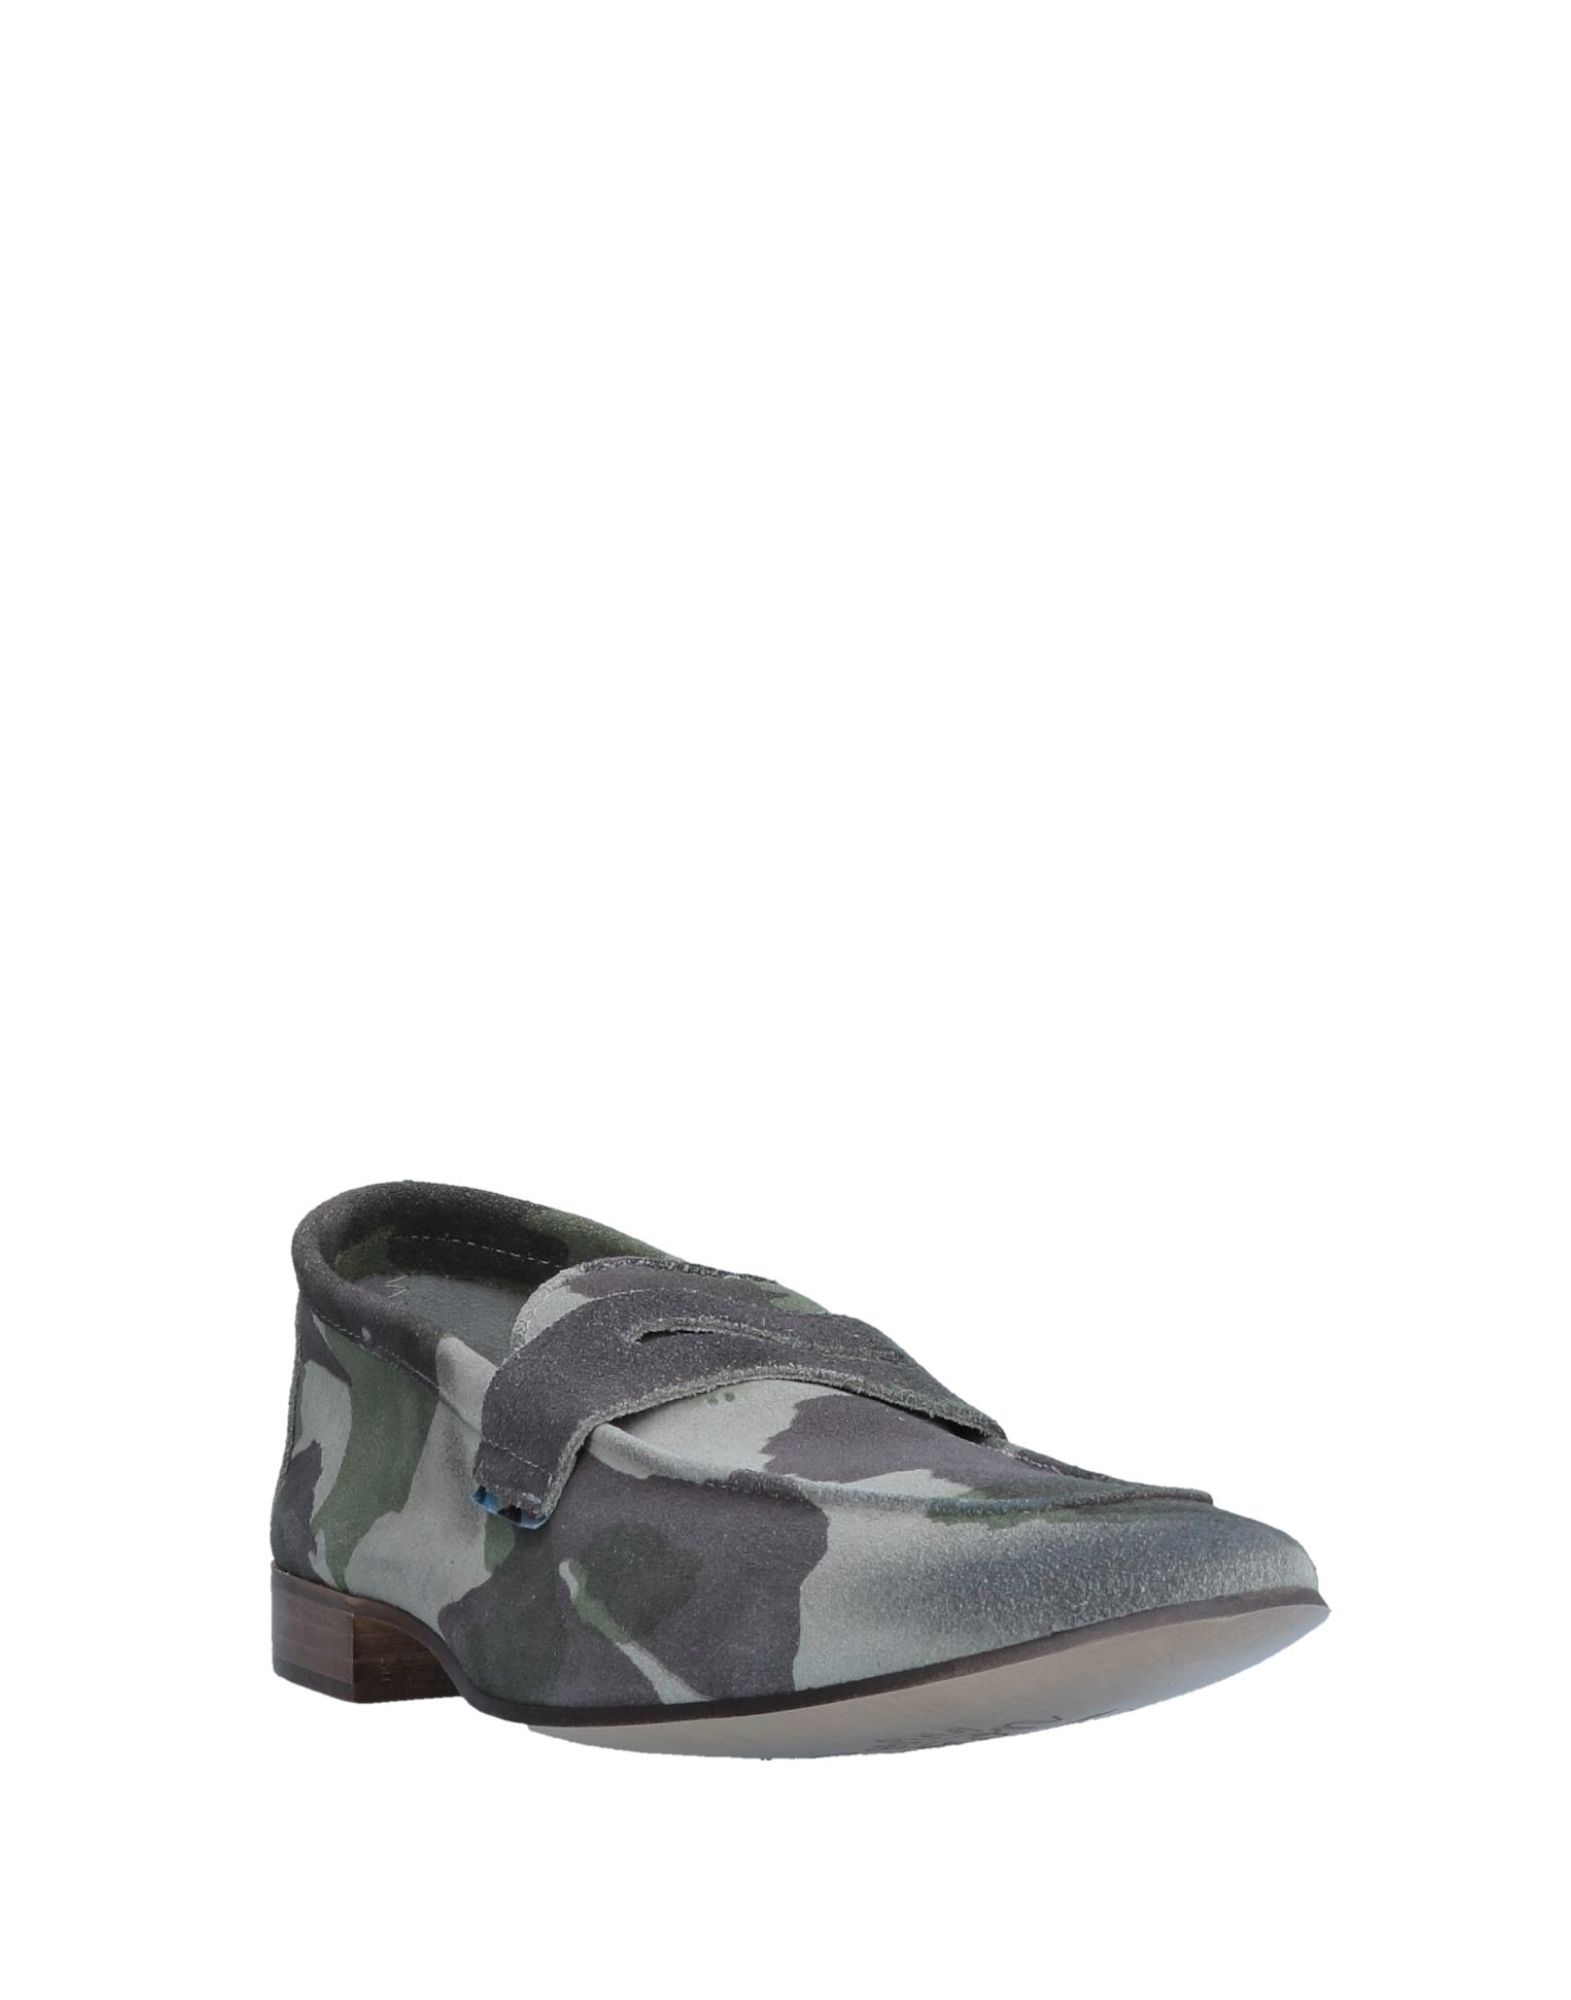 Le Crown Loafers - Men Le Crown Canada Loafers online on  Canada Crown - 11546698MD 805f5b